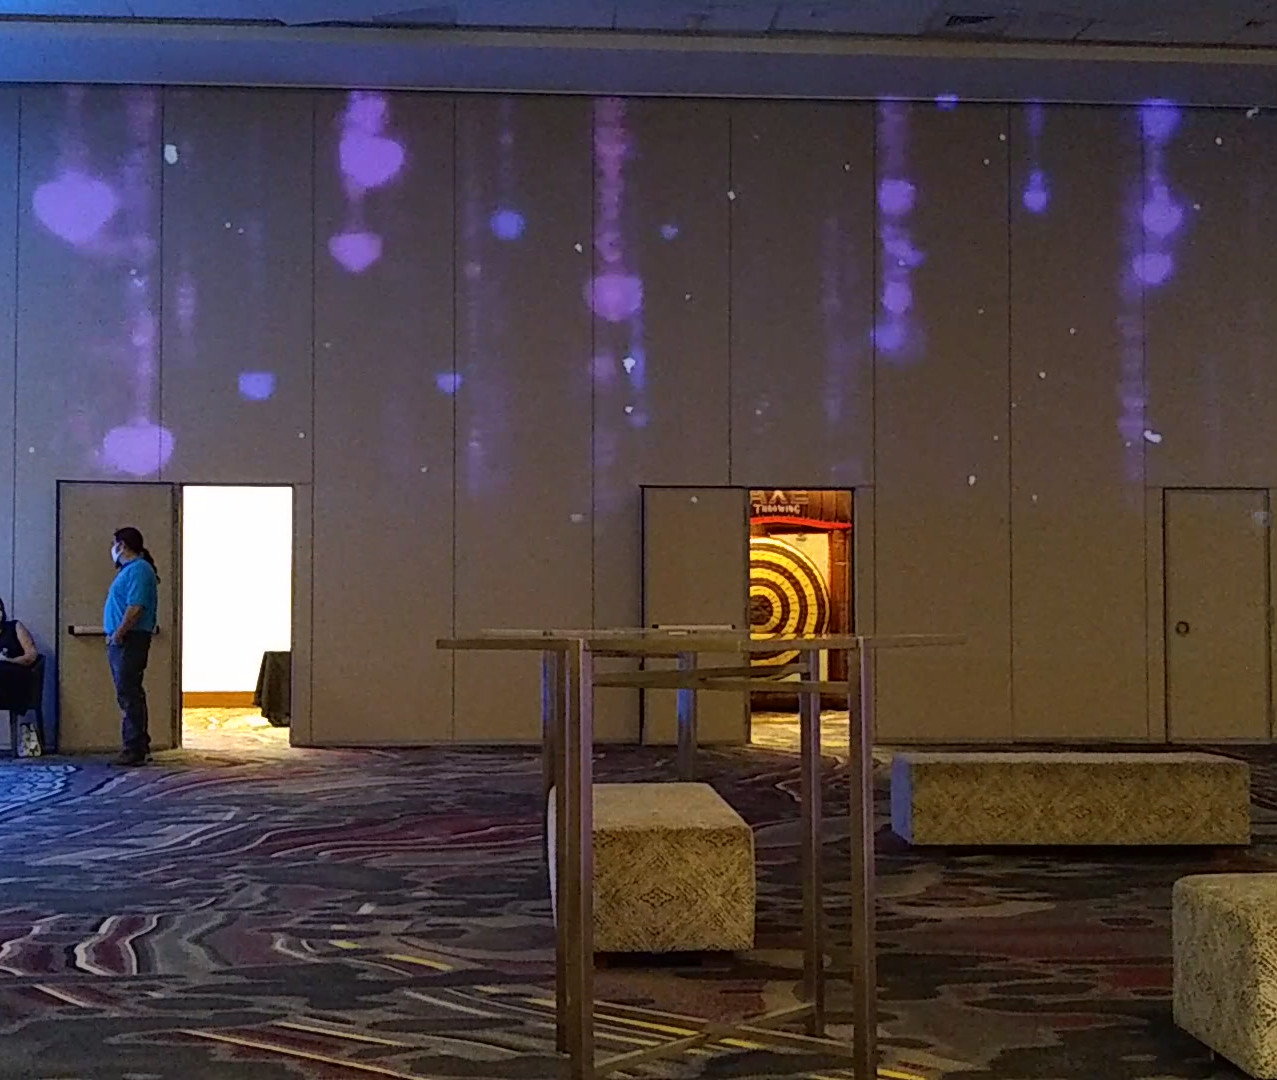 Projection Mapped Air Wall Art Ovations Hotel